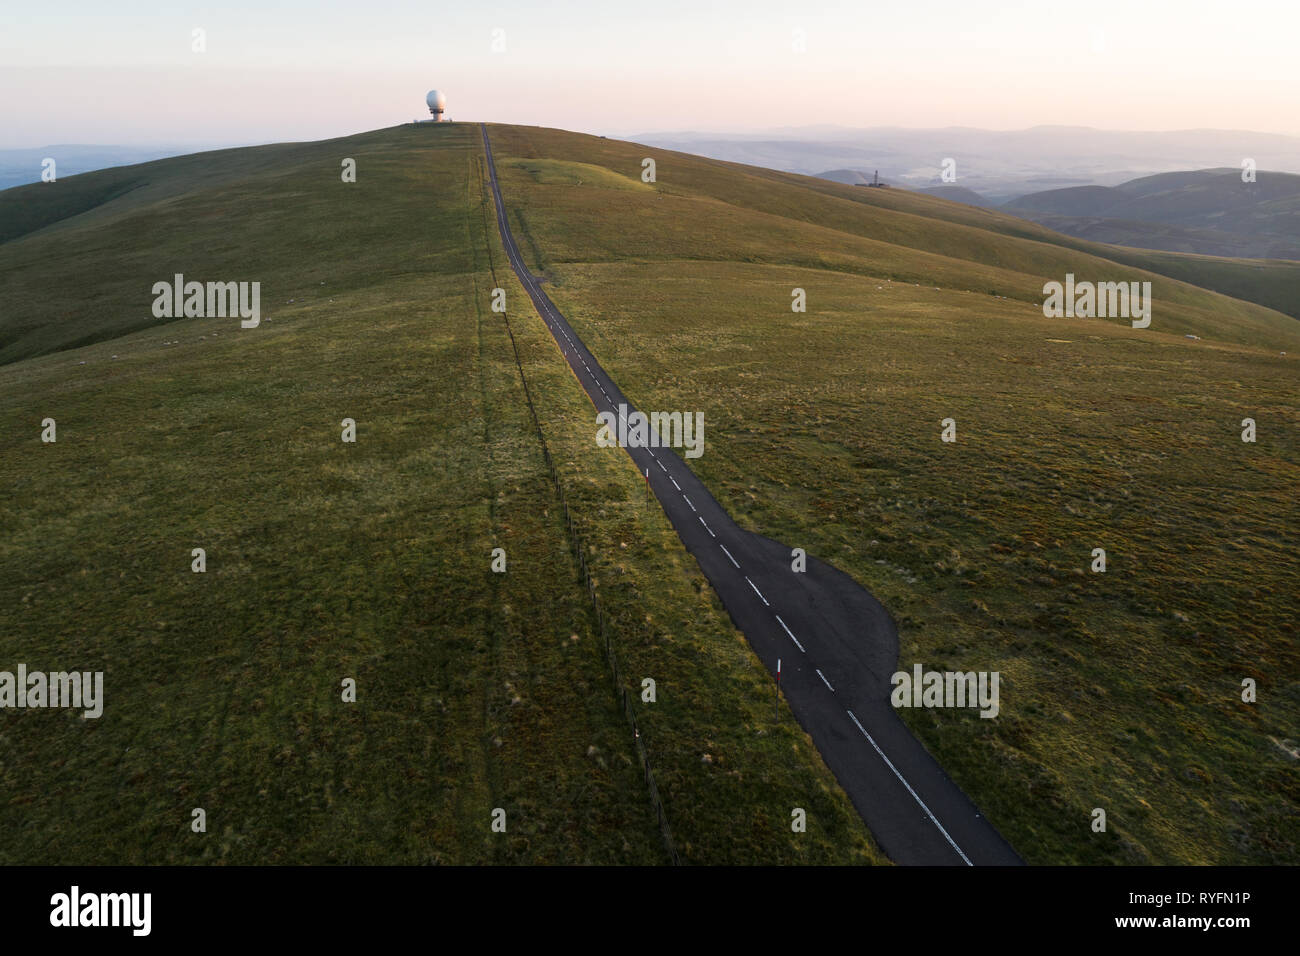 Aerial image of Lowther Hill National Air Traffic Services Radar Station above the villages of Wanlockhead and Leadhills in Dumfries and Galloway. - Stock Image